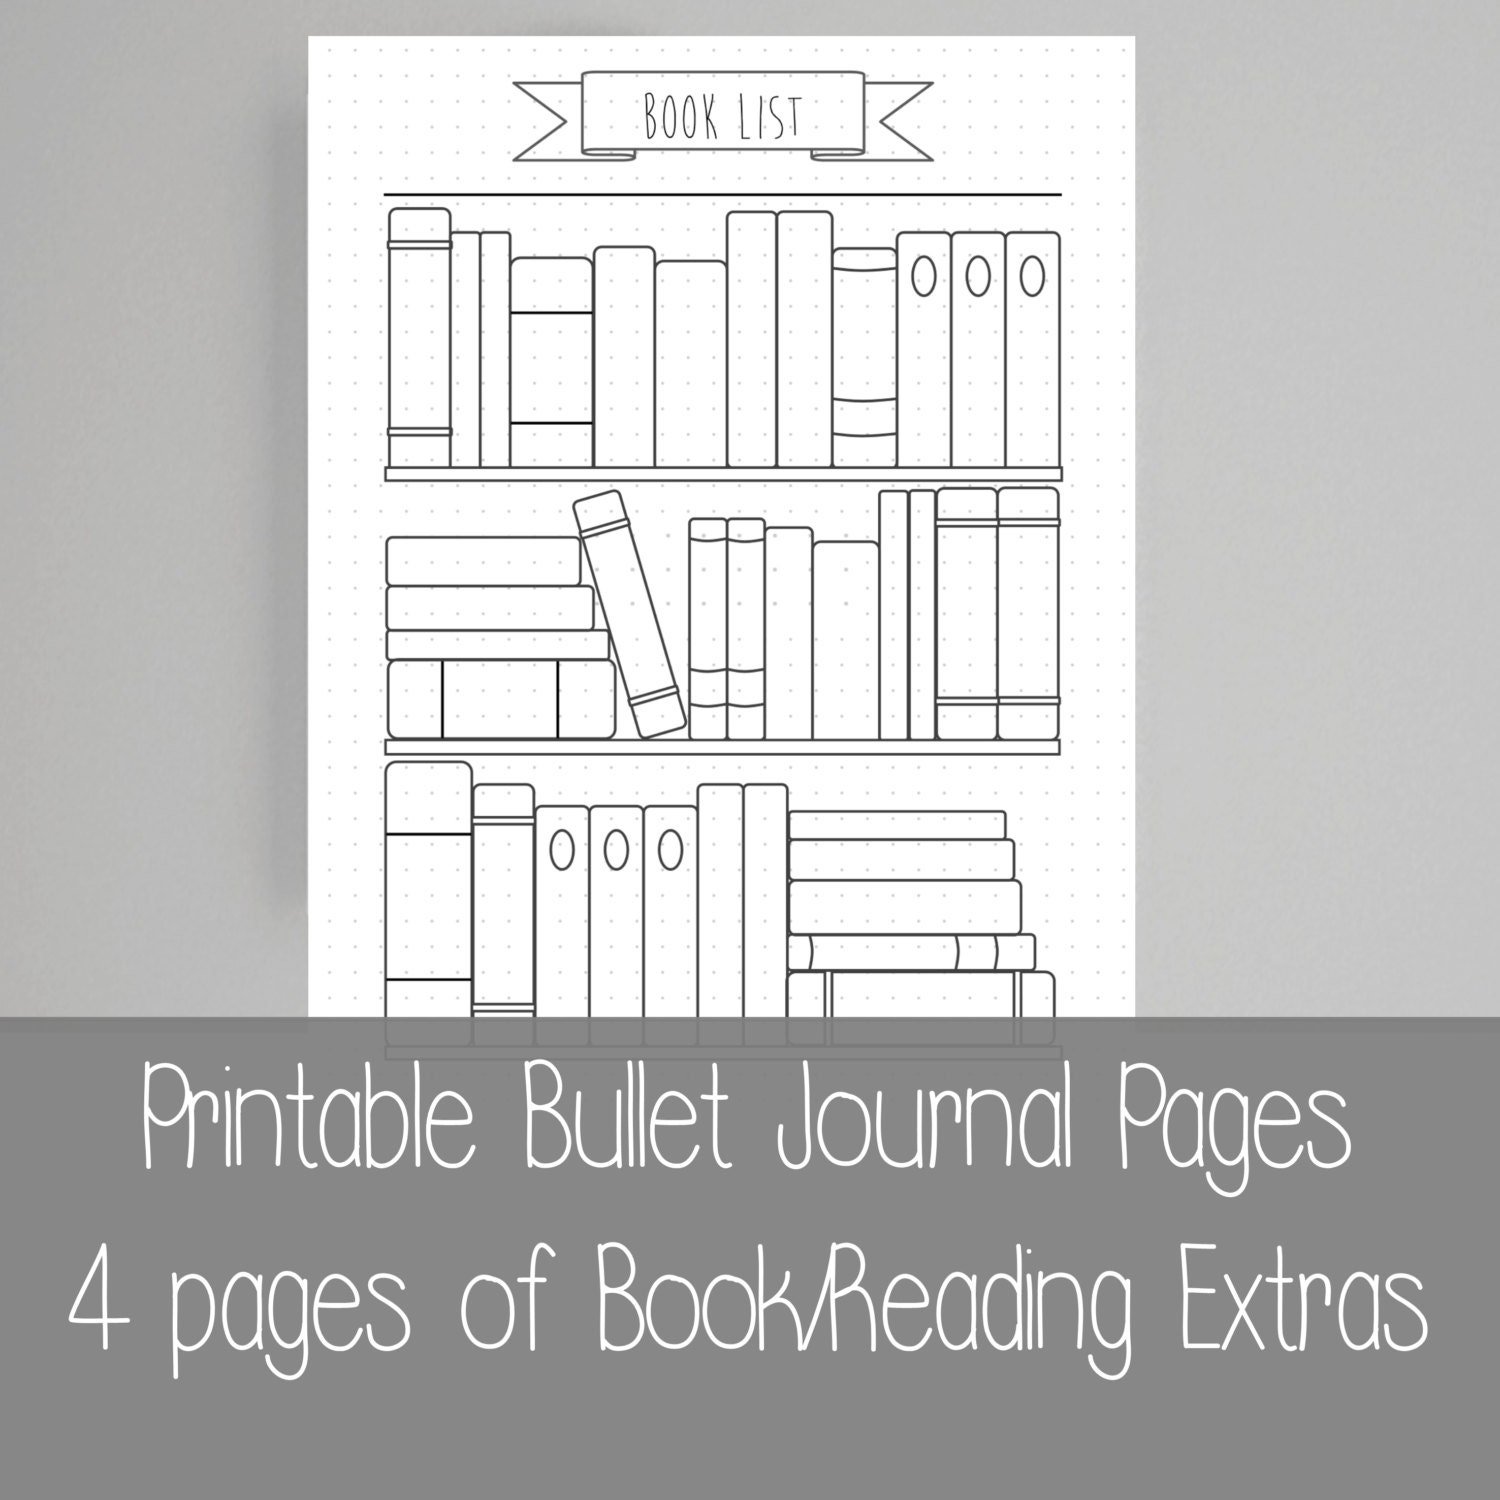 Ridiculous image with bullet journal books to read printable